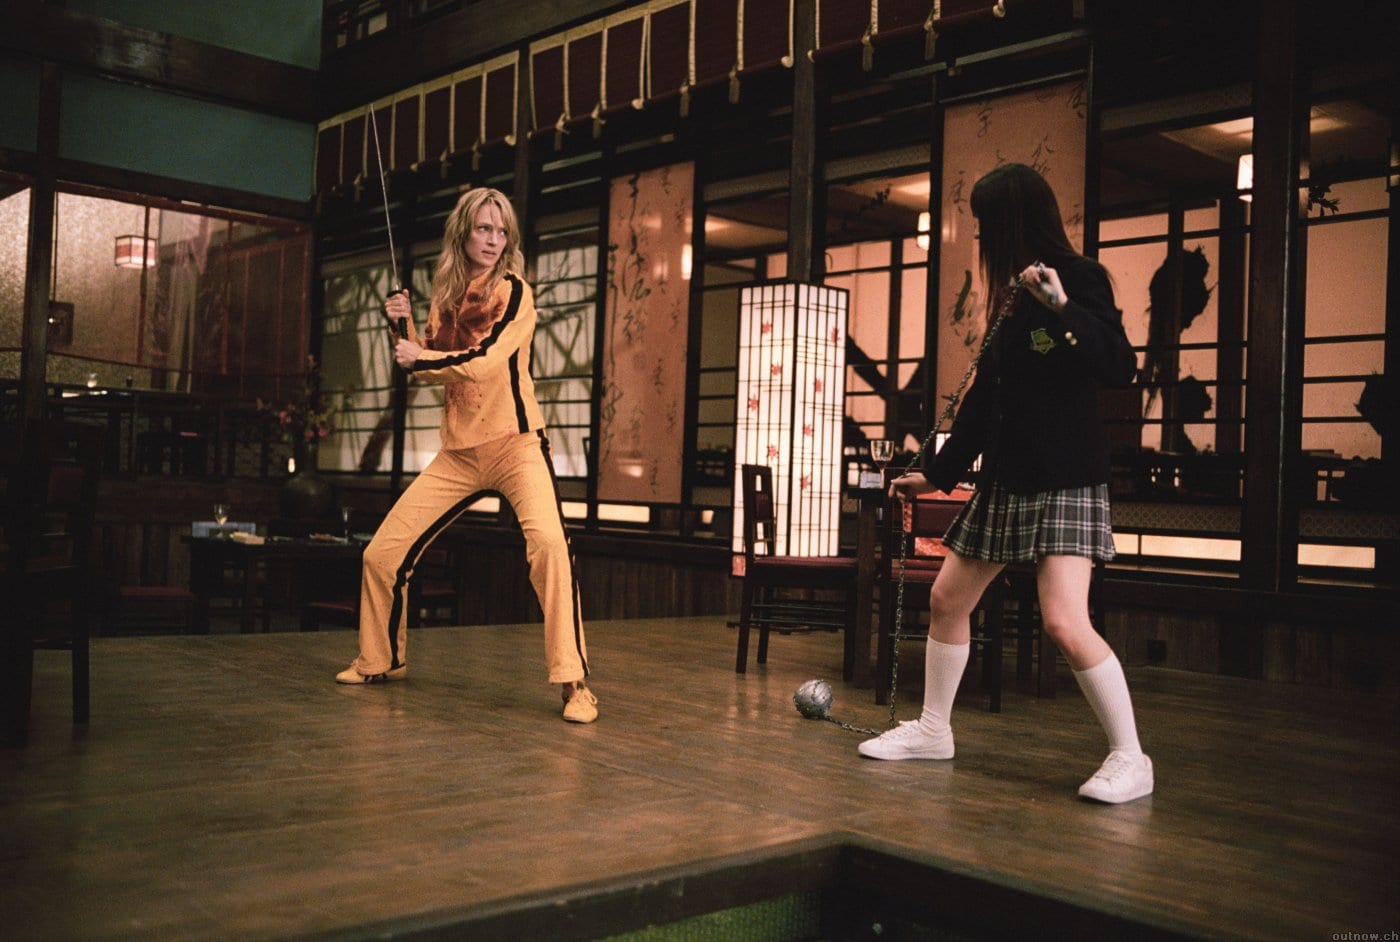 kill bill lucha